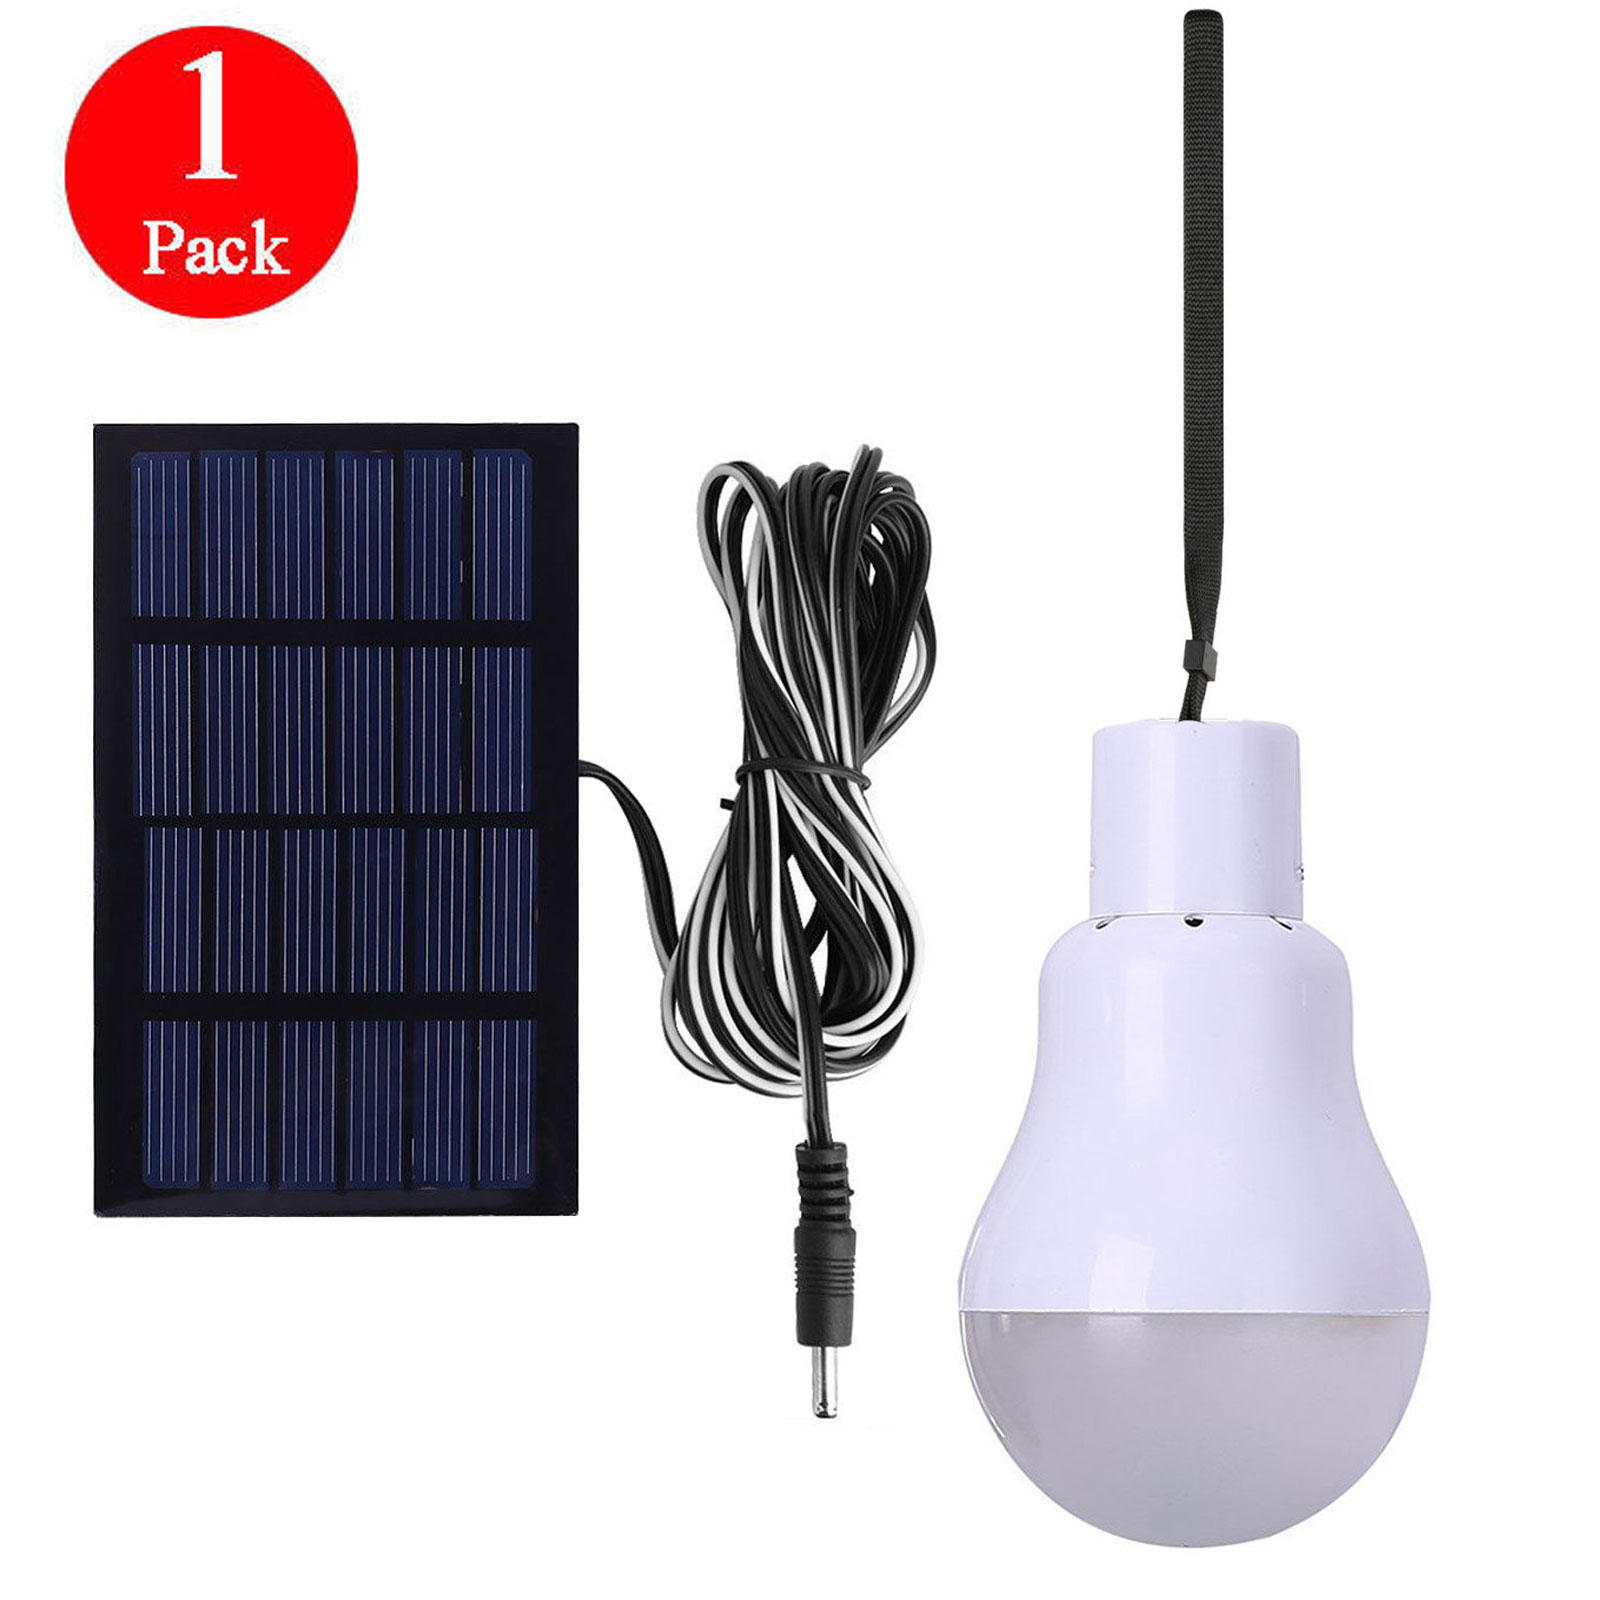 EEEKit Portable Solar Powered Led Bulb Lights Solar Energy Panel Led Lamp Lighting for Hiking Fishing Camping Tent Emergency Use